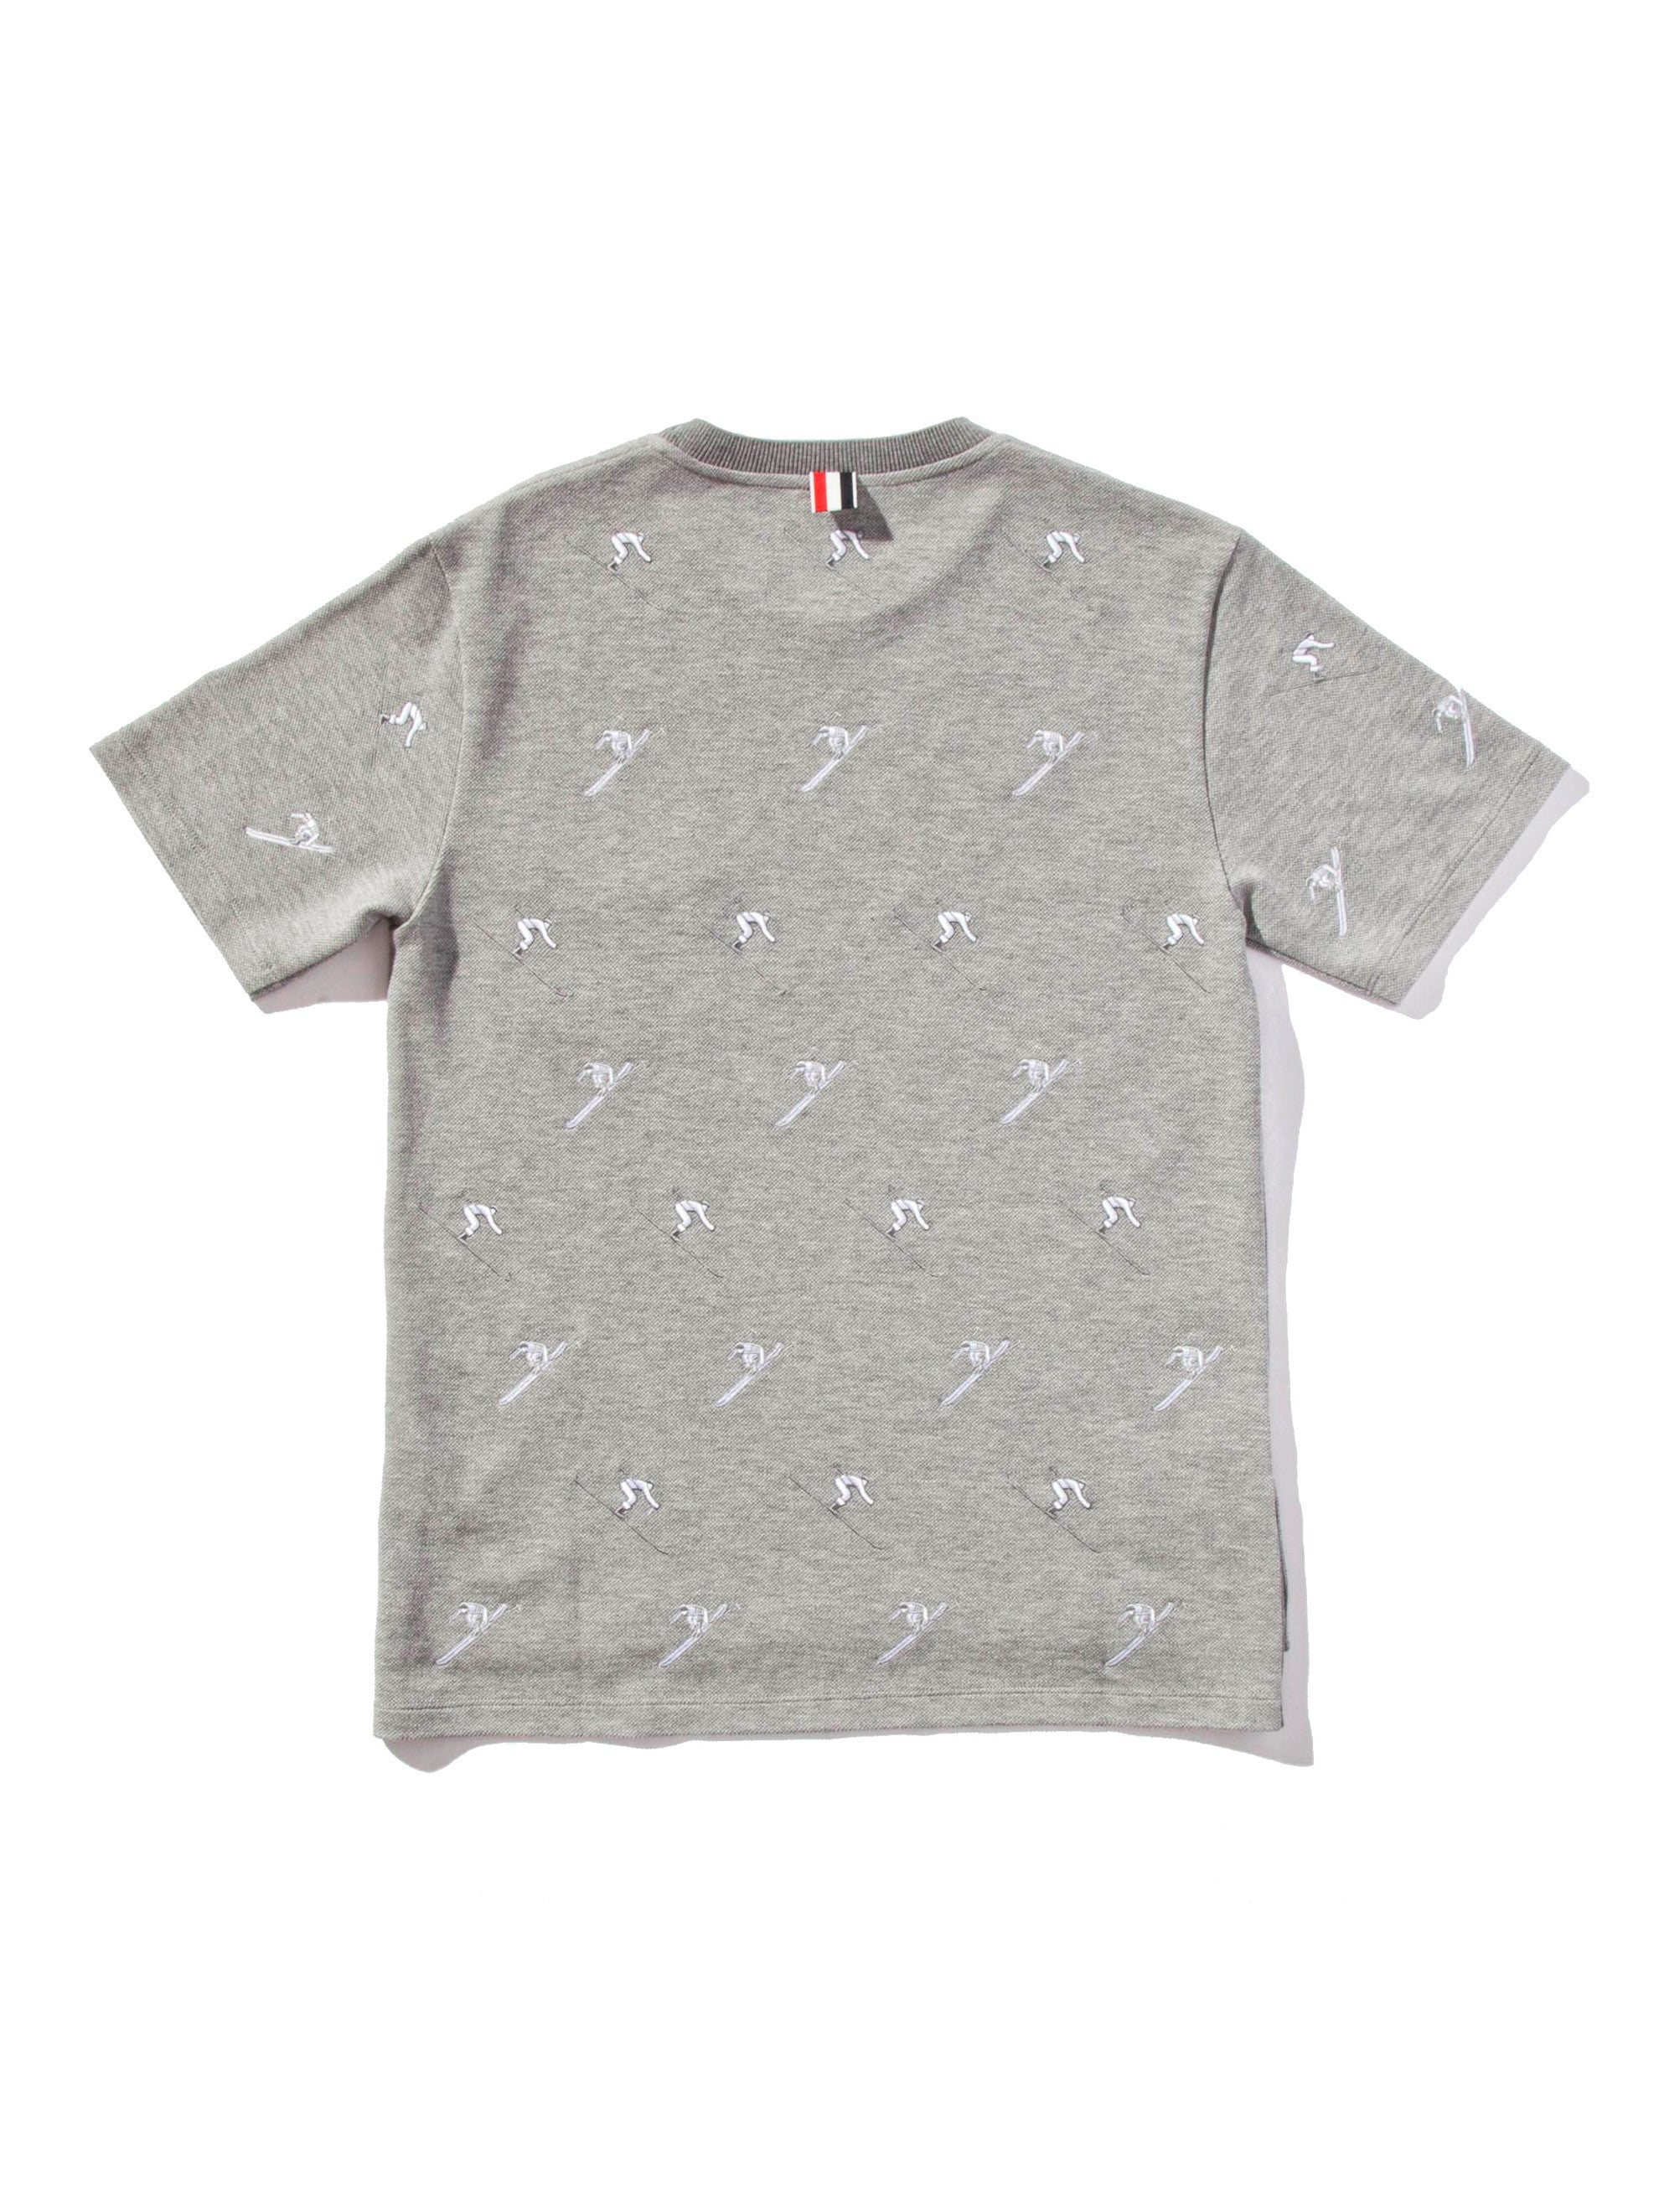 Light Grey SS Rib Crew Neck Tee (Classic Pique W/ Allover Skier Embroidery) 6